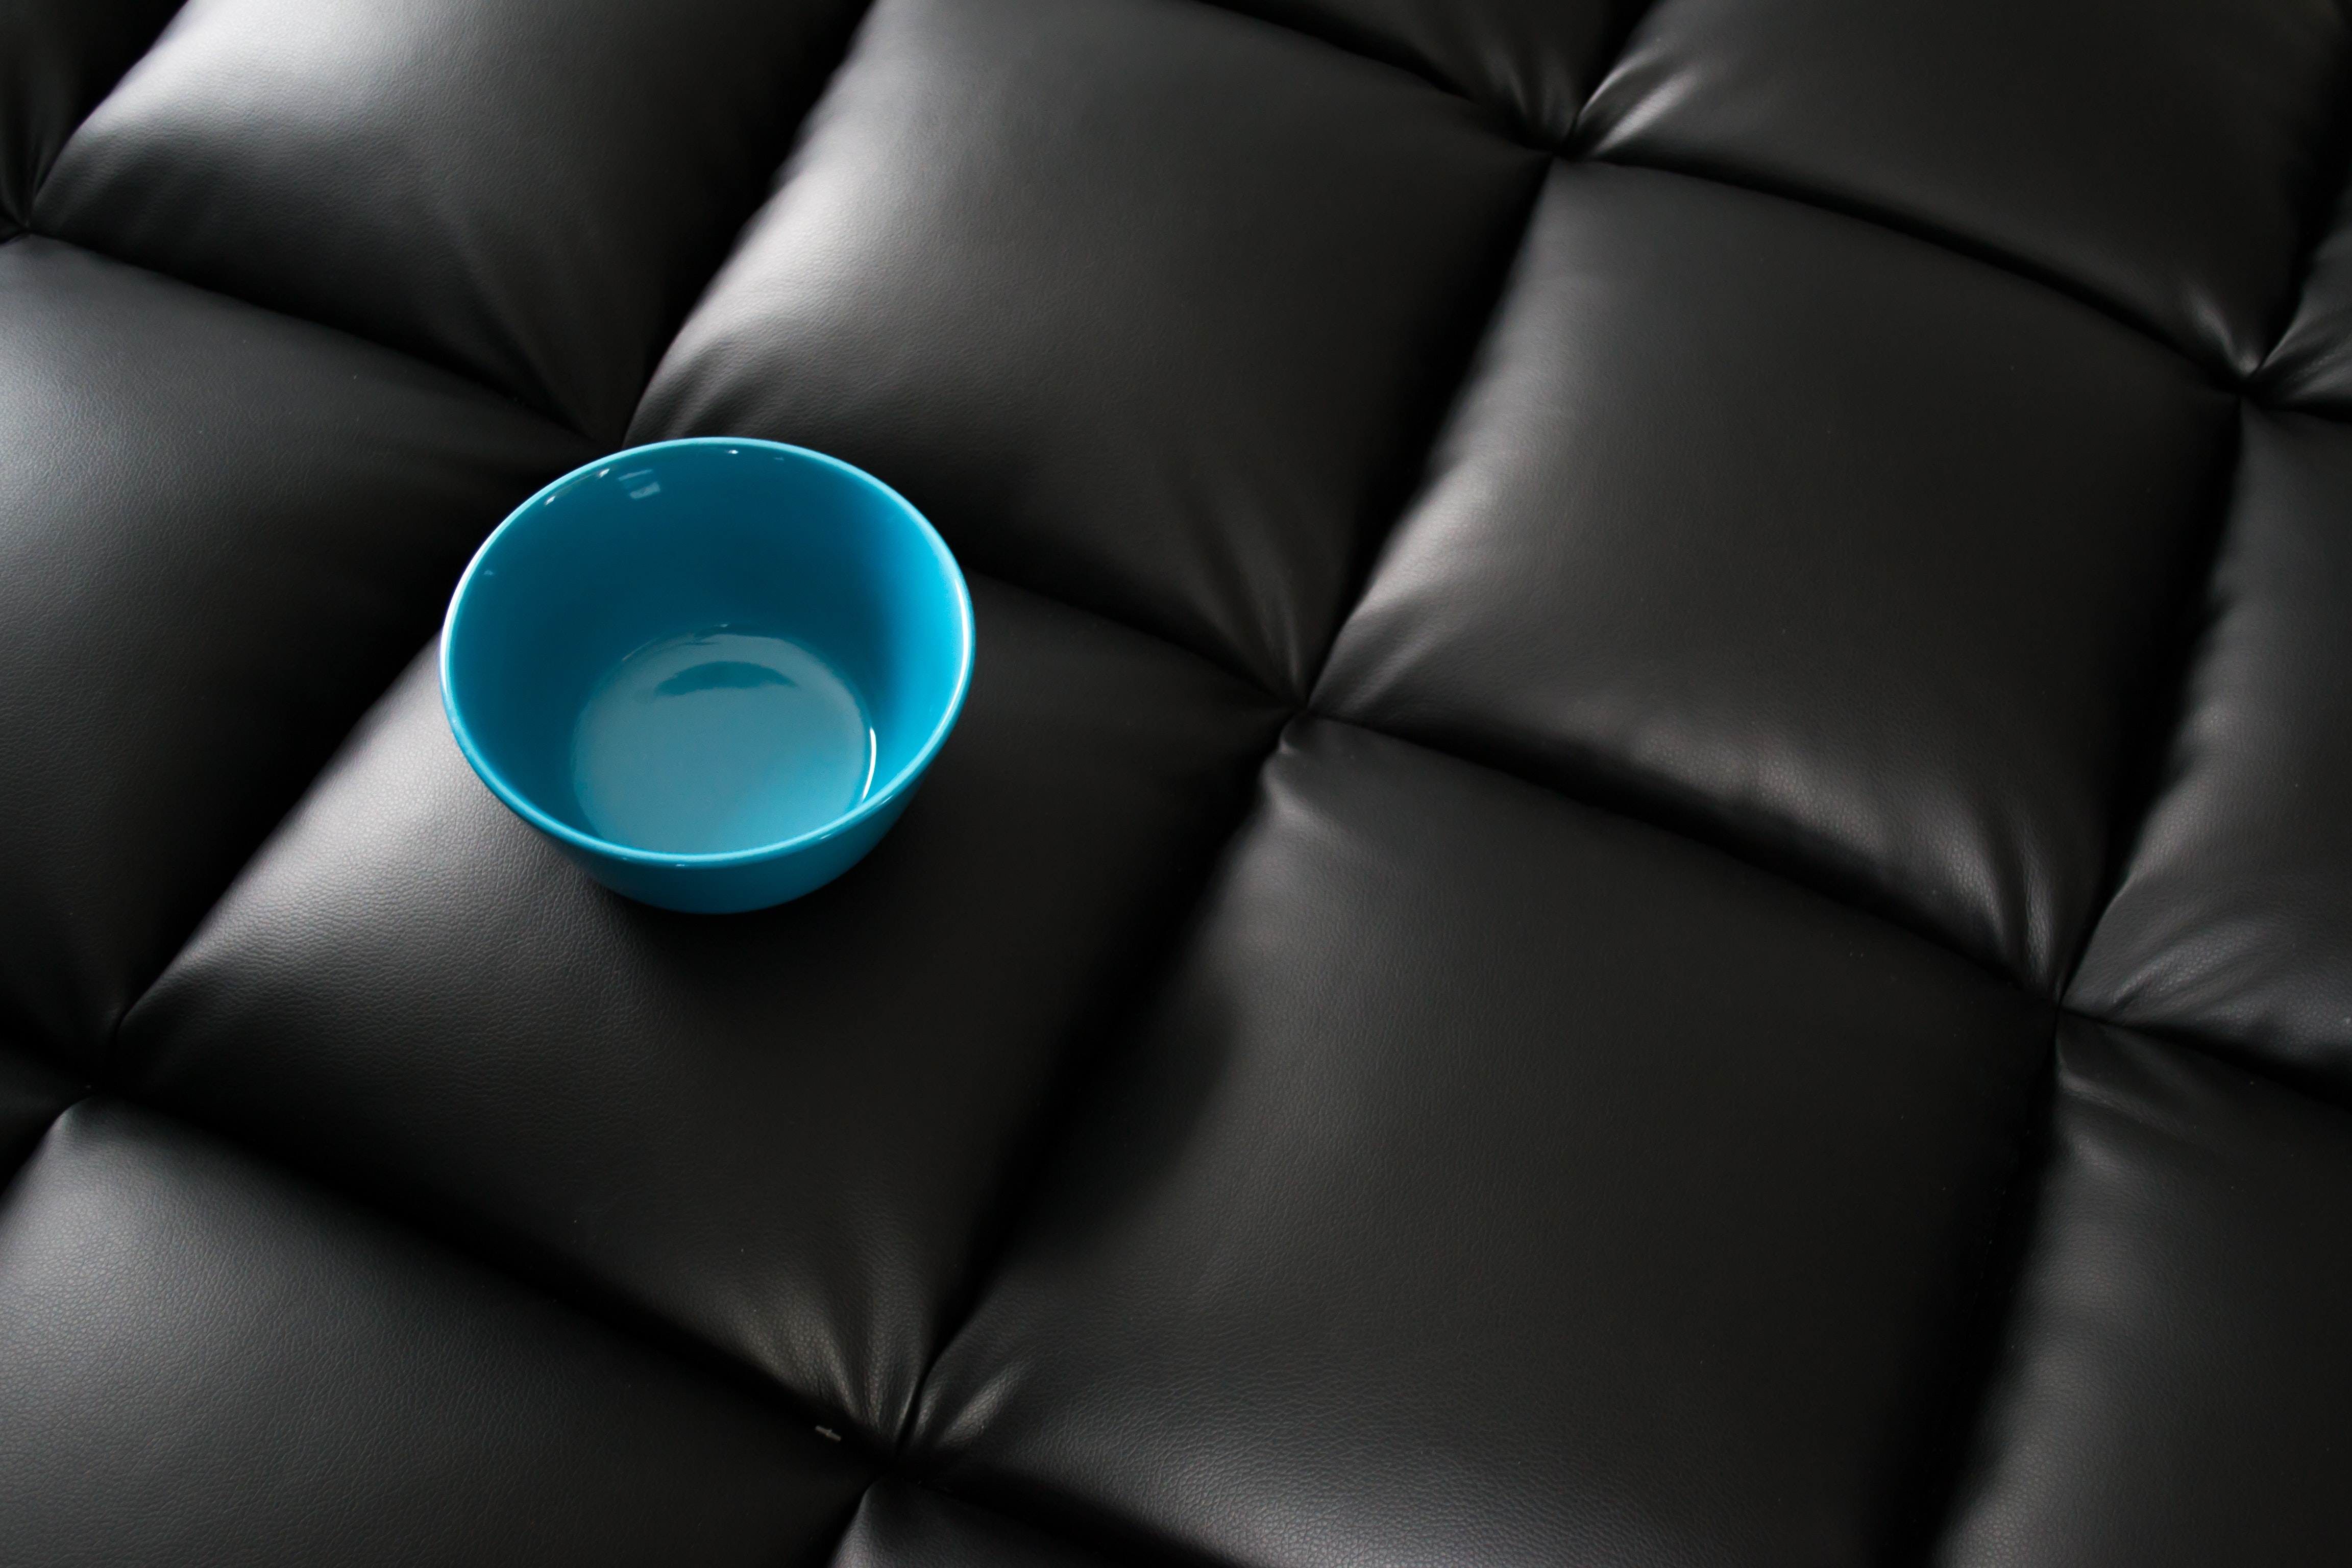 Blue ceramic bowl on black leather surface photo